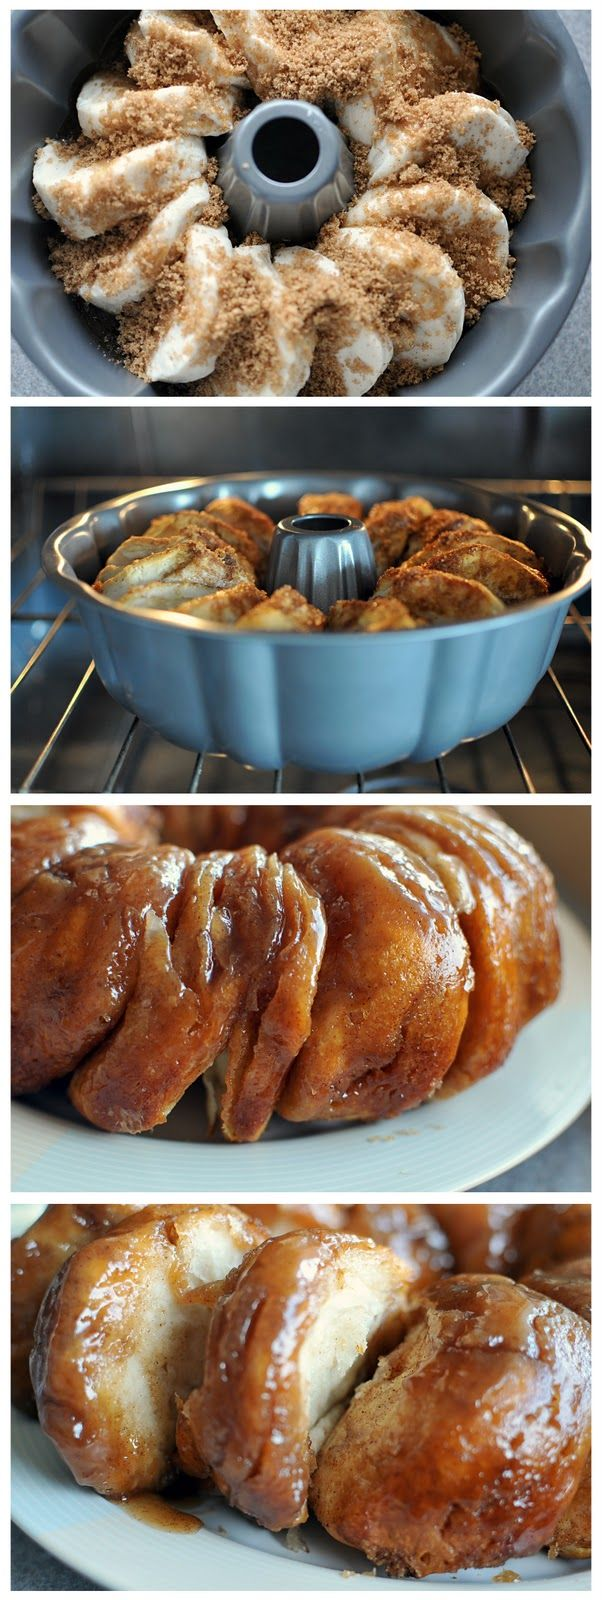 Sticky Bun Breakfast Ring - awesome flavor and easy to make - makes a beautiful presentation.Monkeys Breads, Monkey Bread, Breakfast Rings, Biscuits Cinnamon Rolls, Breakfast Idea, Christmas Mornings, Sticky Buns, Buns Breakfast, Food Recipe